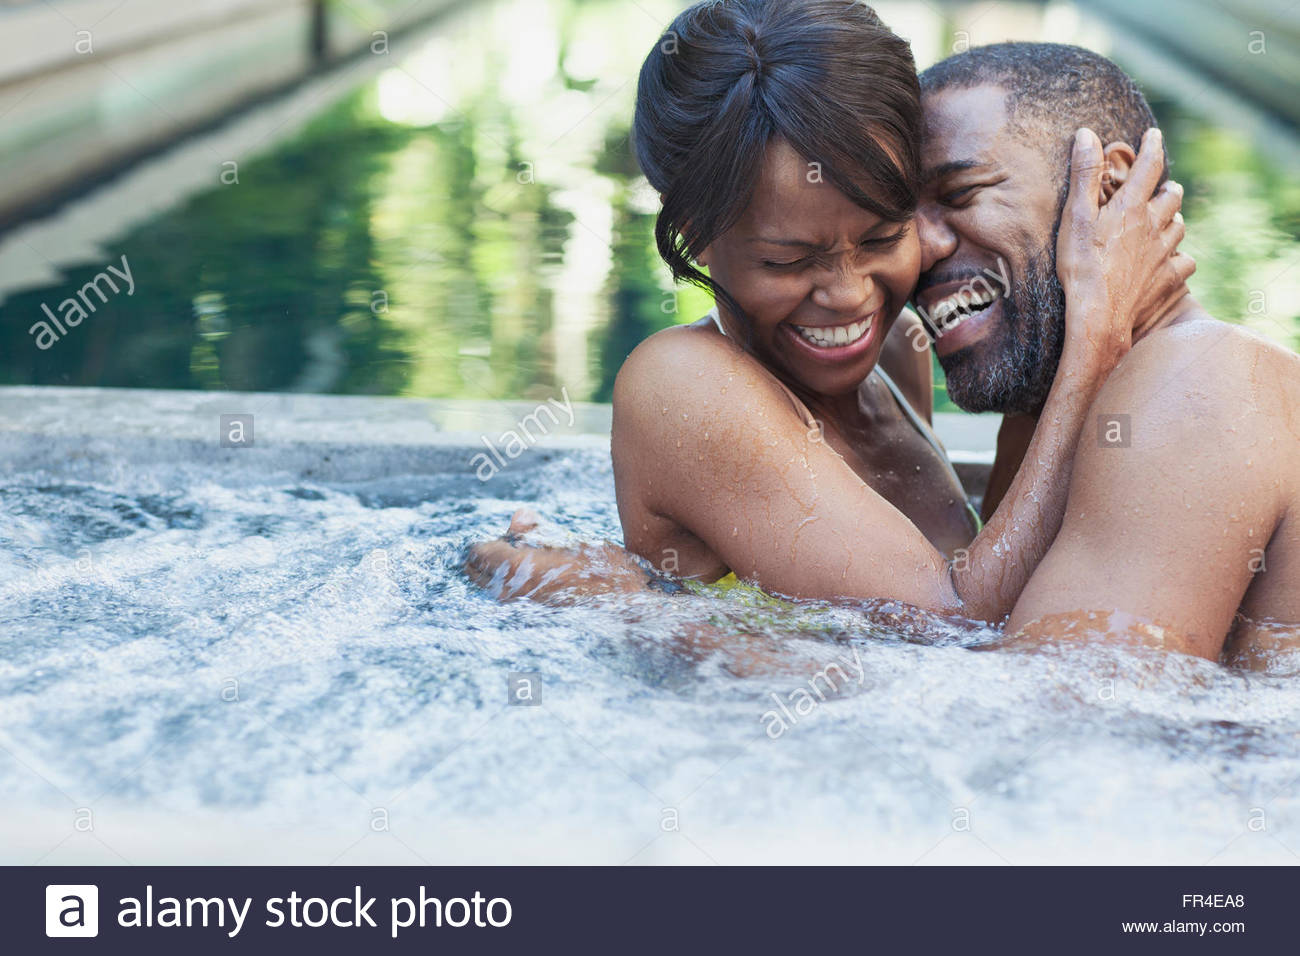 couple holding each other and laughing in hot tub - Stock Image